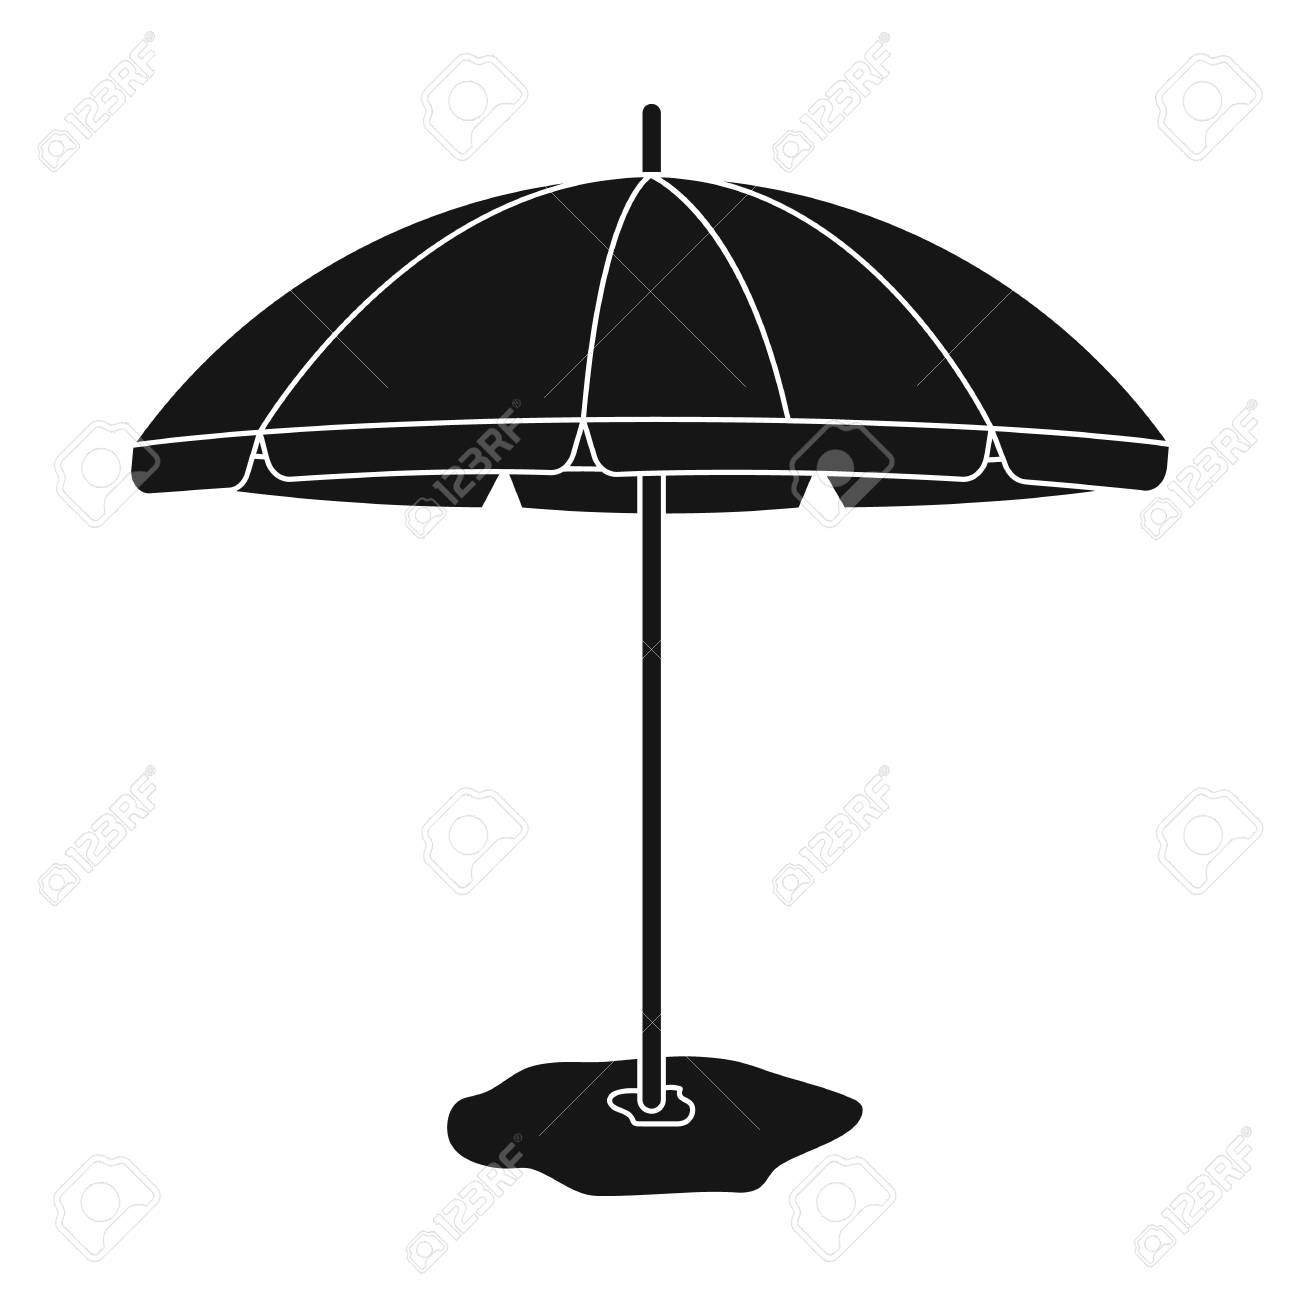 beb00d4fe8 Yelow-green beach umbrella icon in black style isolated on white..